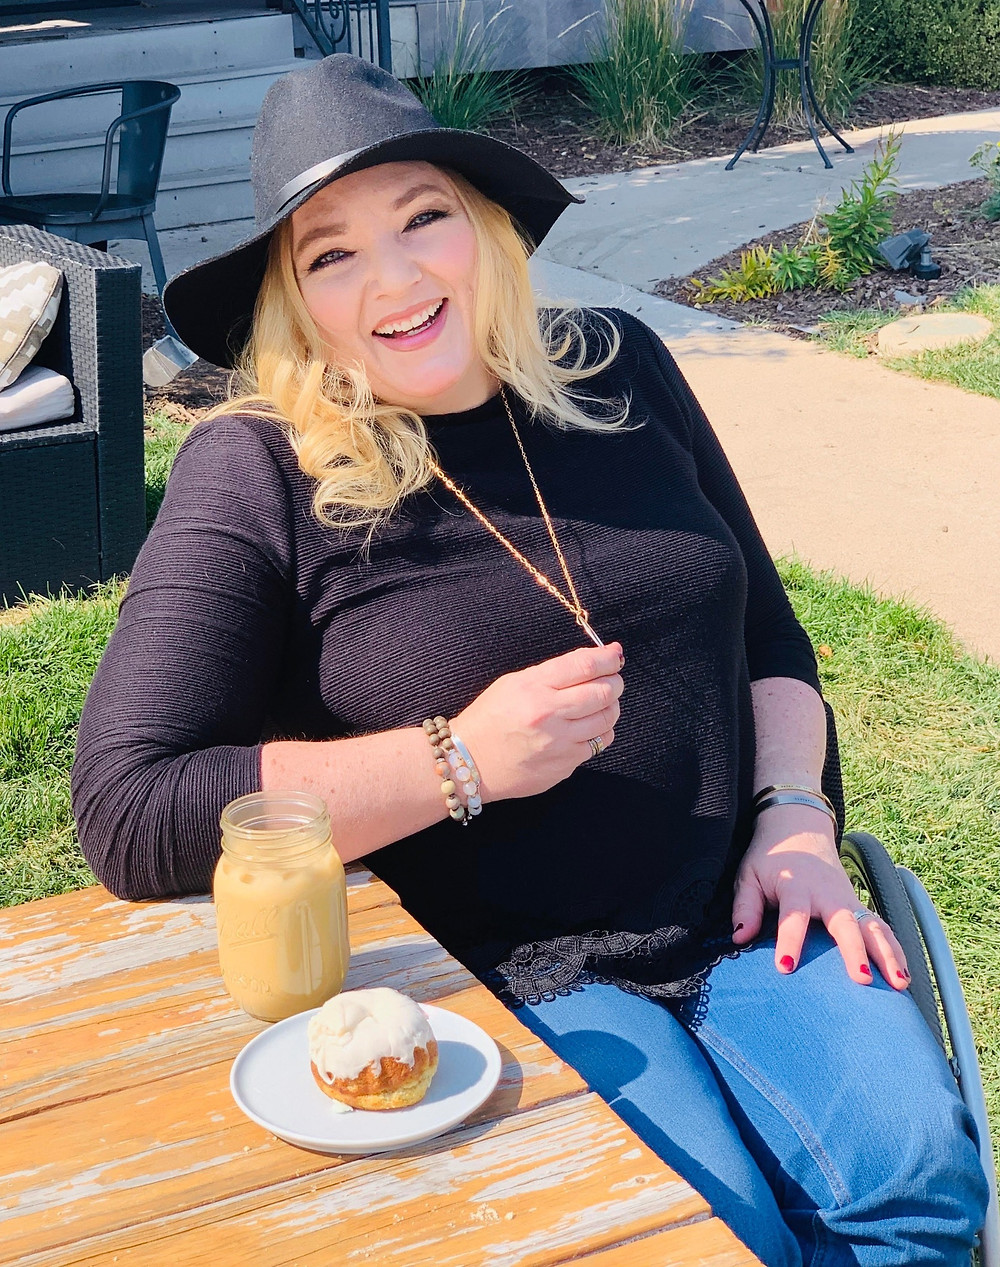 Kate is seated outside at a wood table, she is having an iced coffee and donut. She is wearing black sweater, jeans, and black suede hat. She is also wearing our fidget necklace and she is fidgeting with it.